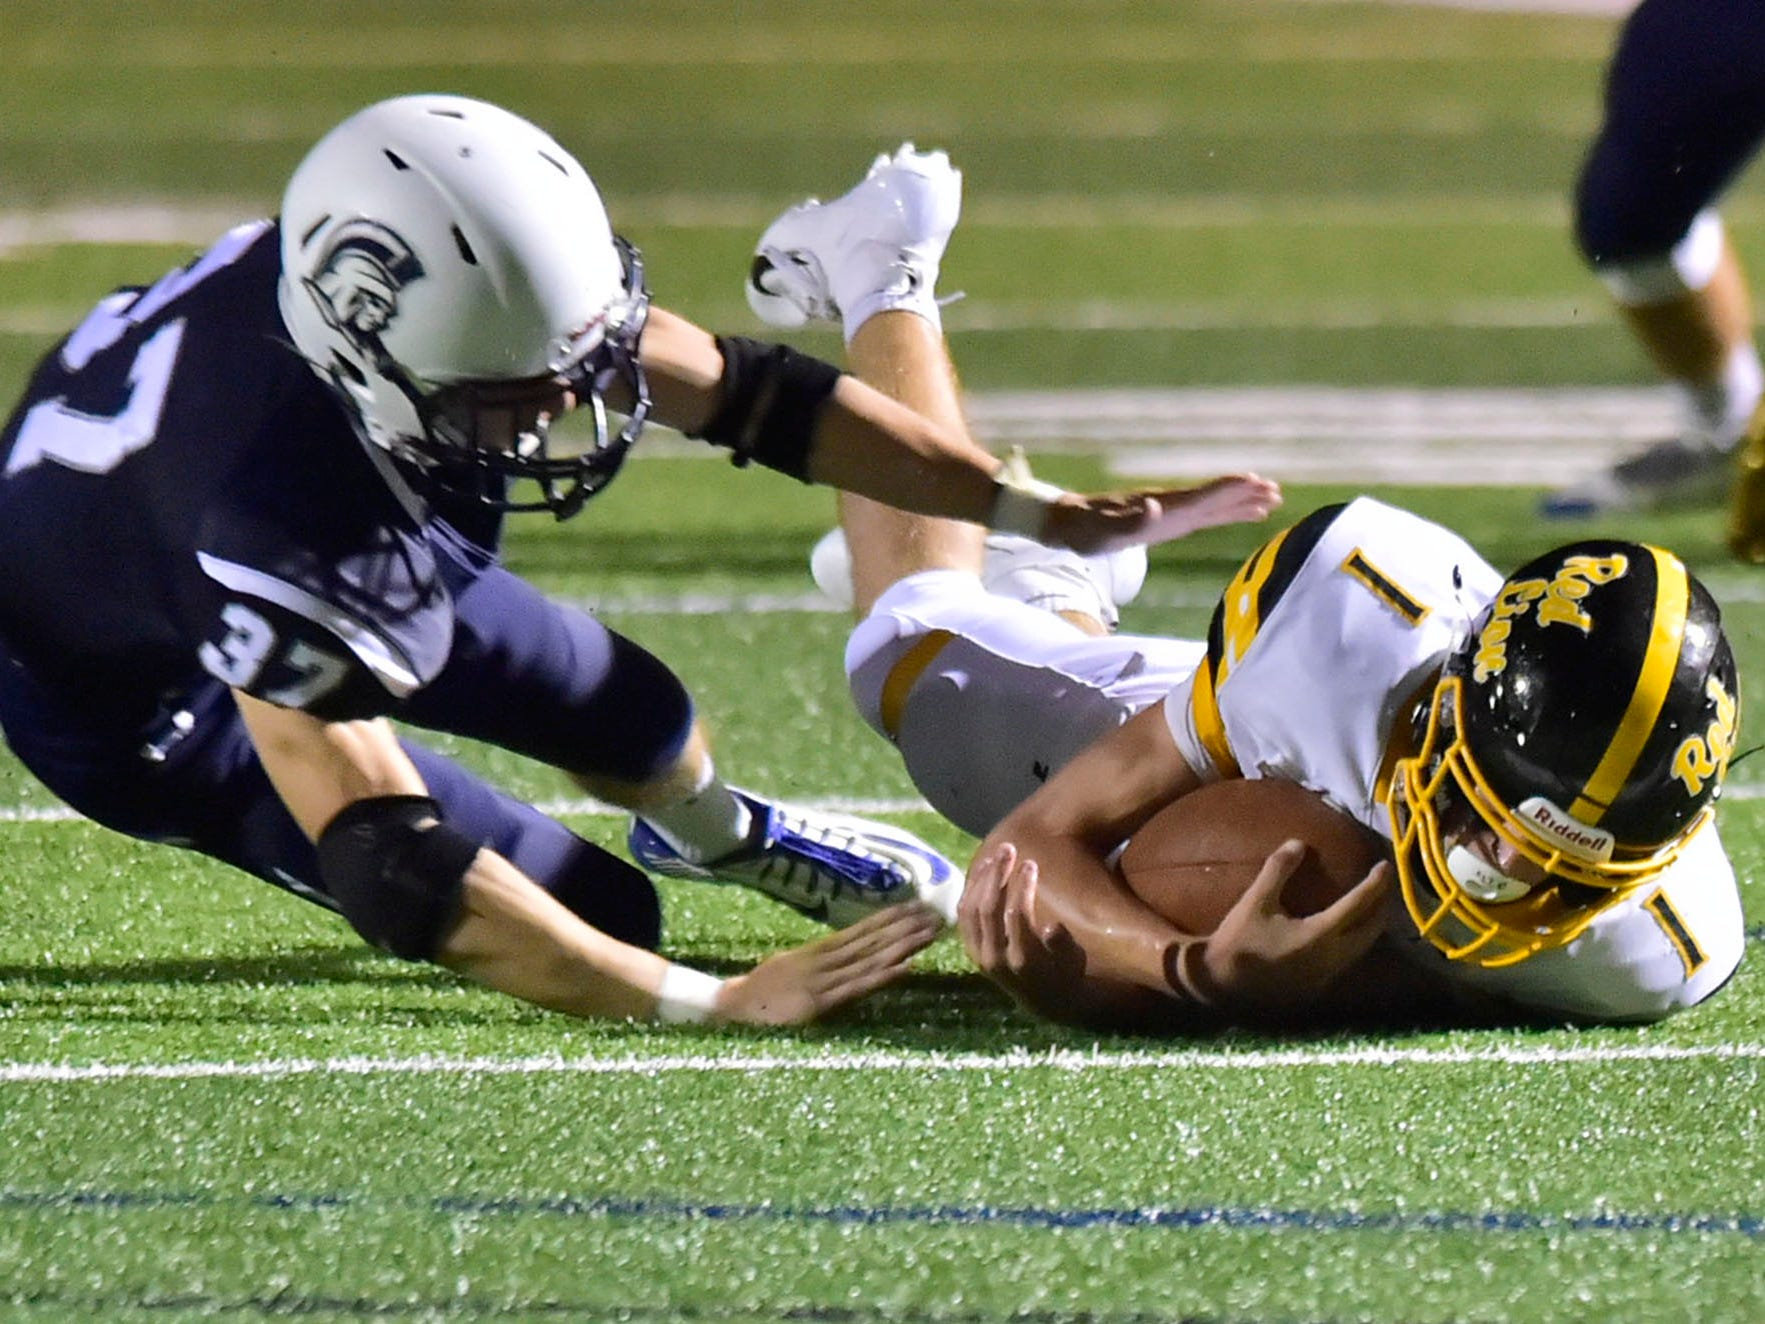 Red Lion's Randy Fizer (1) loses his footing and is tackled by Chambersburg's Levi Mixell. Chambersburg defeated Red Lion 28-19 in PIAA football on Friday, Sept. 7, 2018.